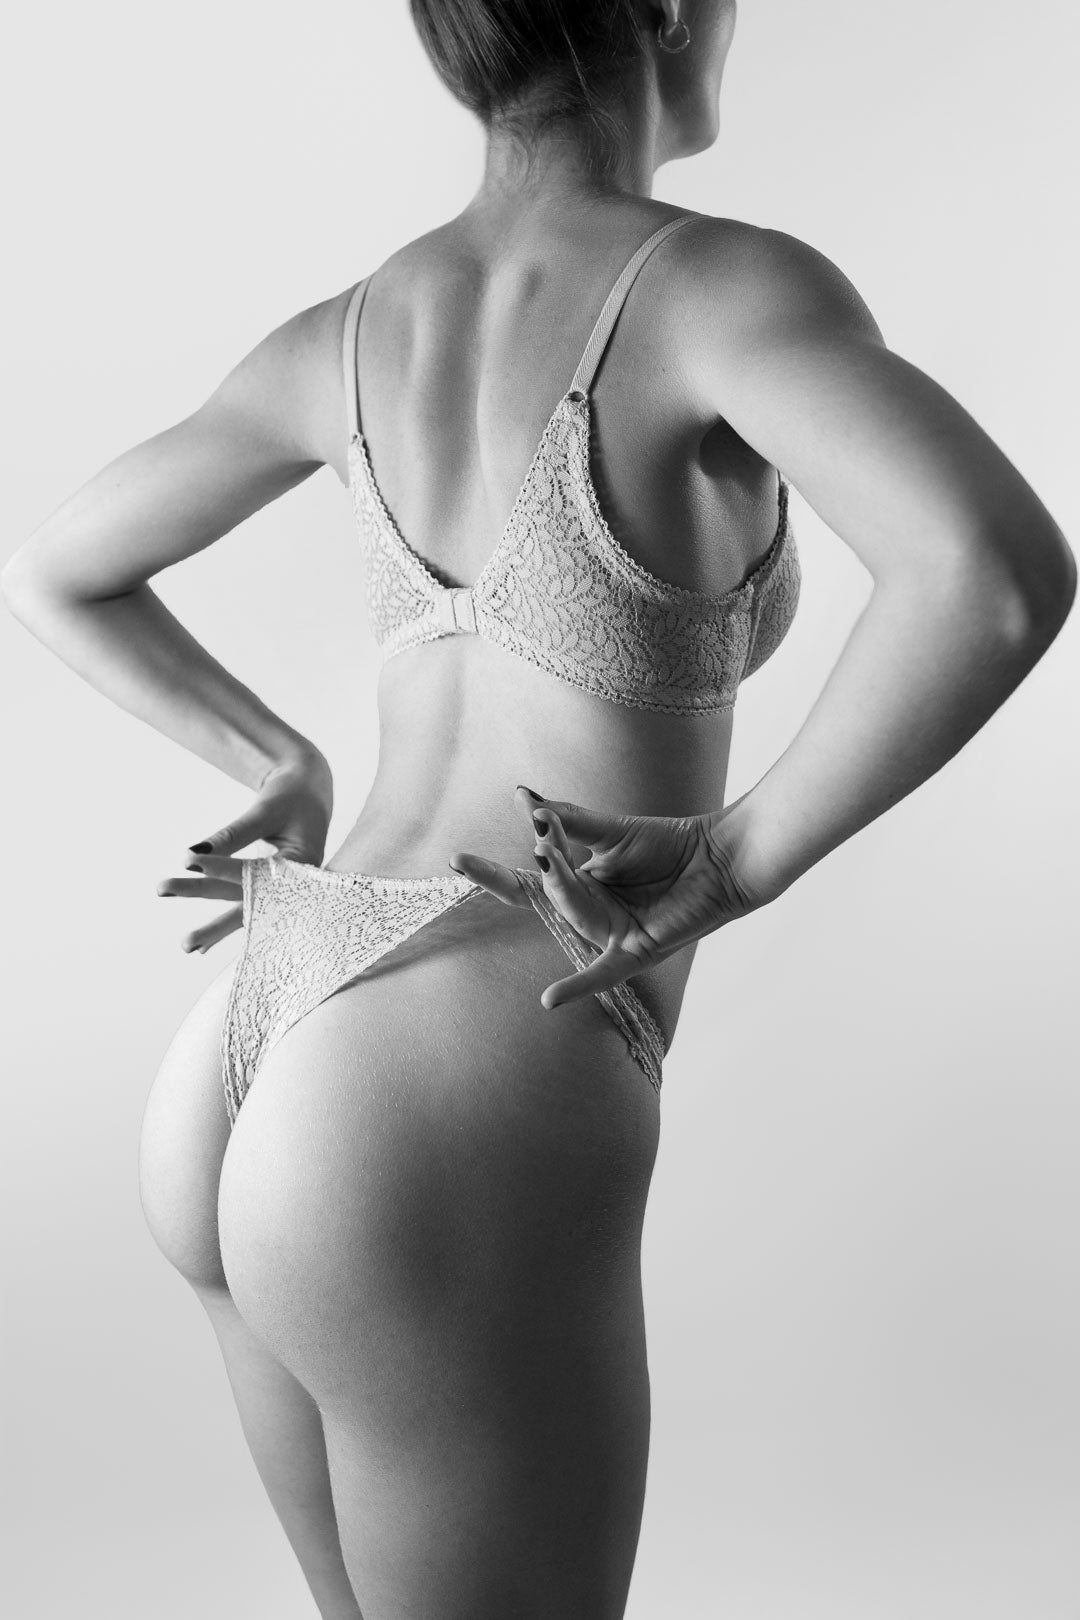 Female model wearing Aubade lingerie set, black and white photography